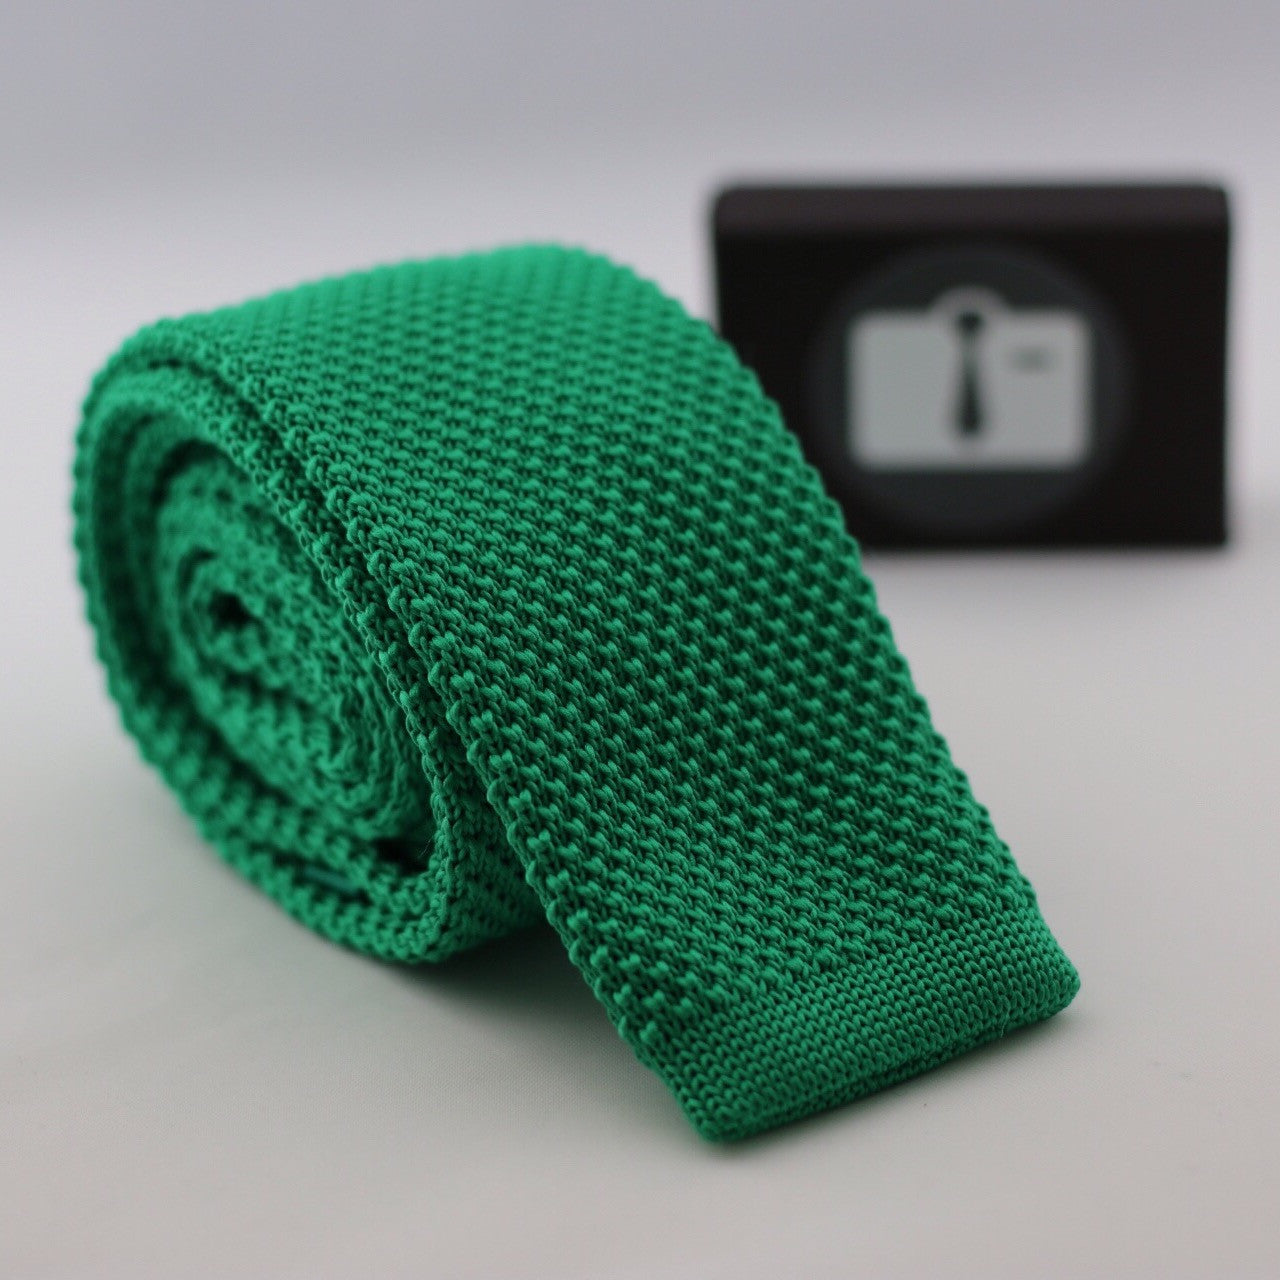 Spring Green Knitted Tie